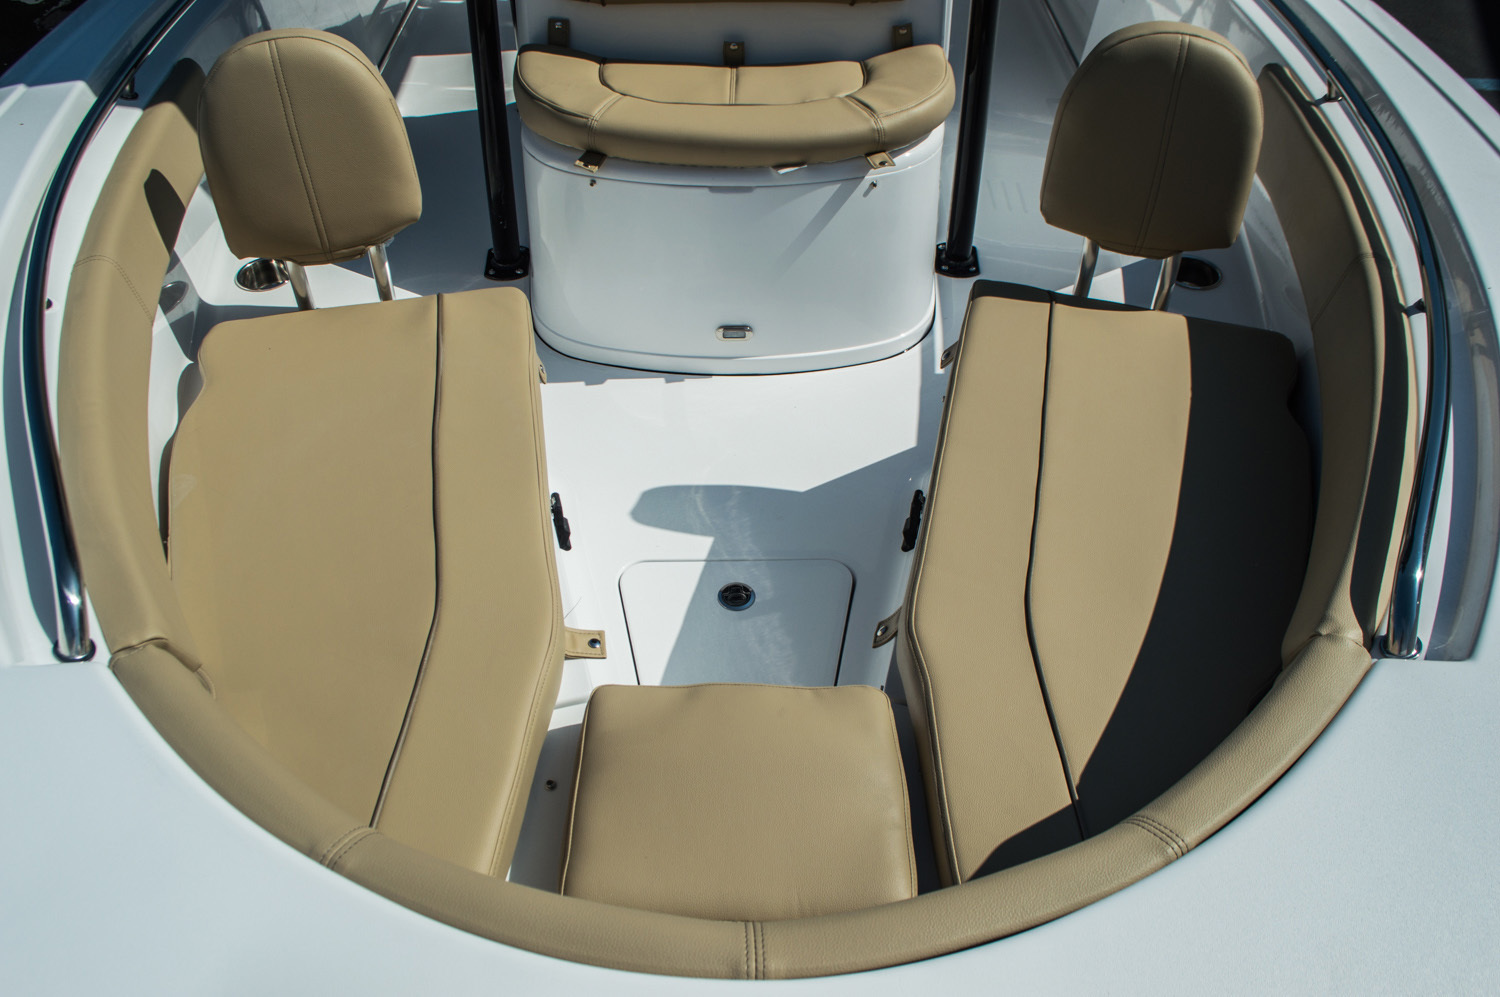 Thumbnail 12 for New 2016 Sportsman Open 212 Center Console boat for sale in West Palm Beach, FL